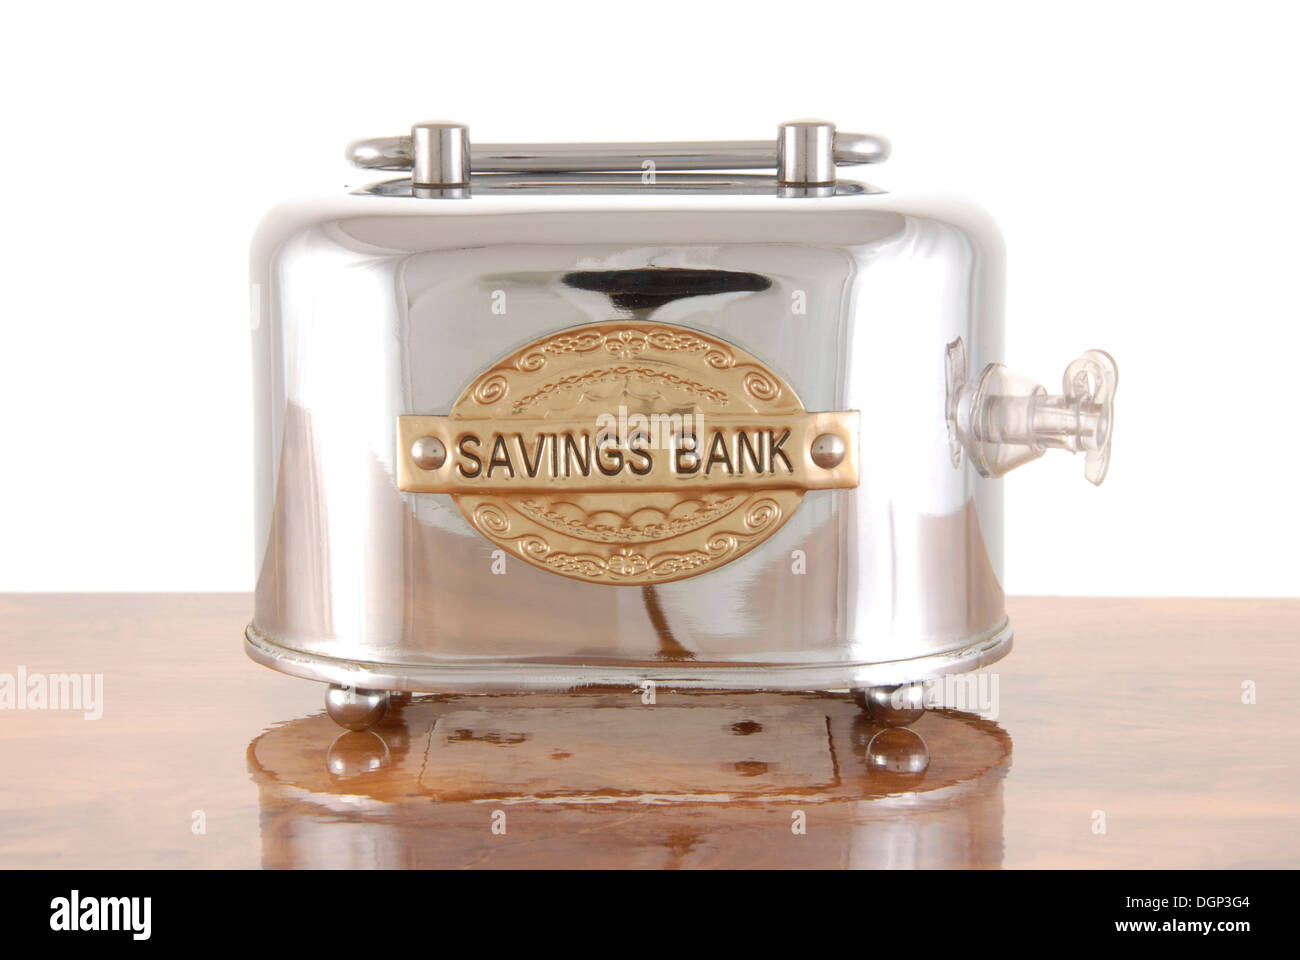 Savings box with valve, symbolic image for inflated banks - Stock Image